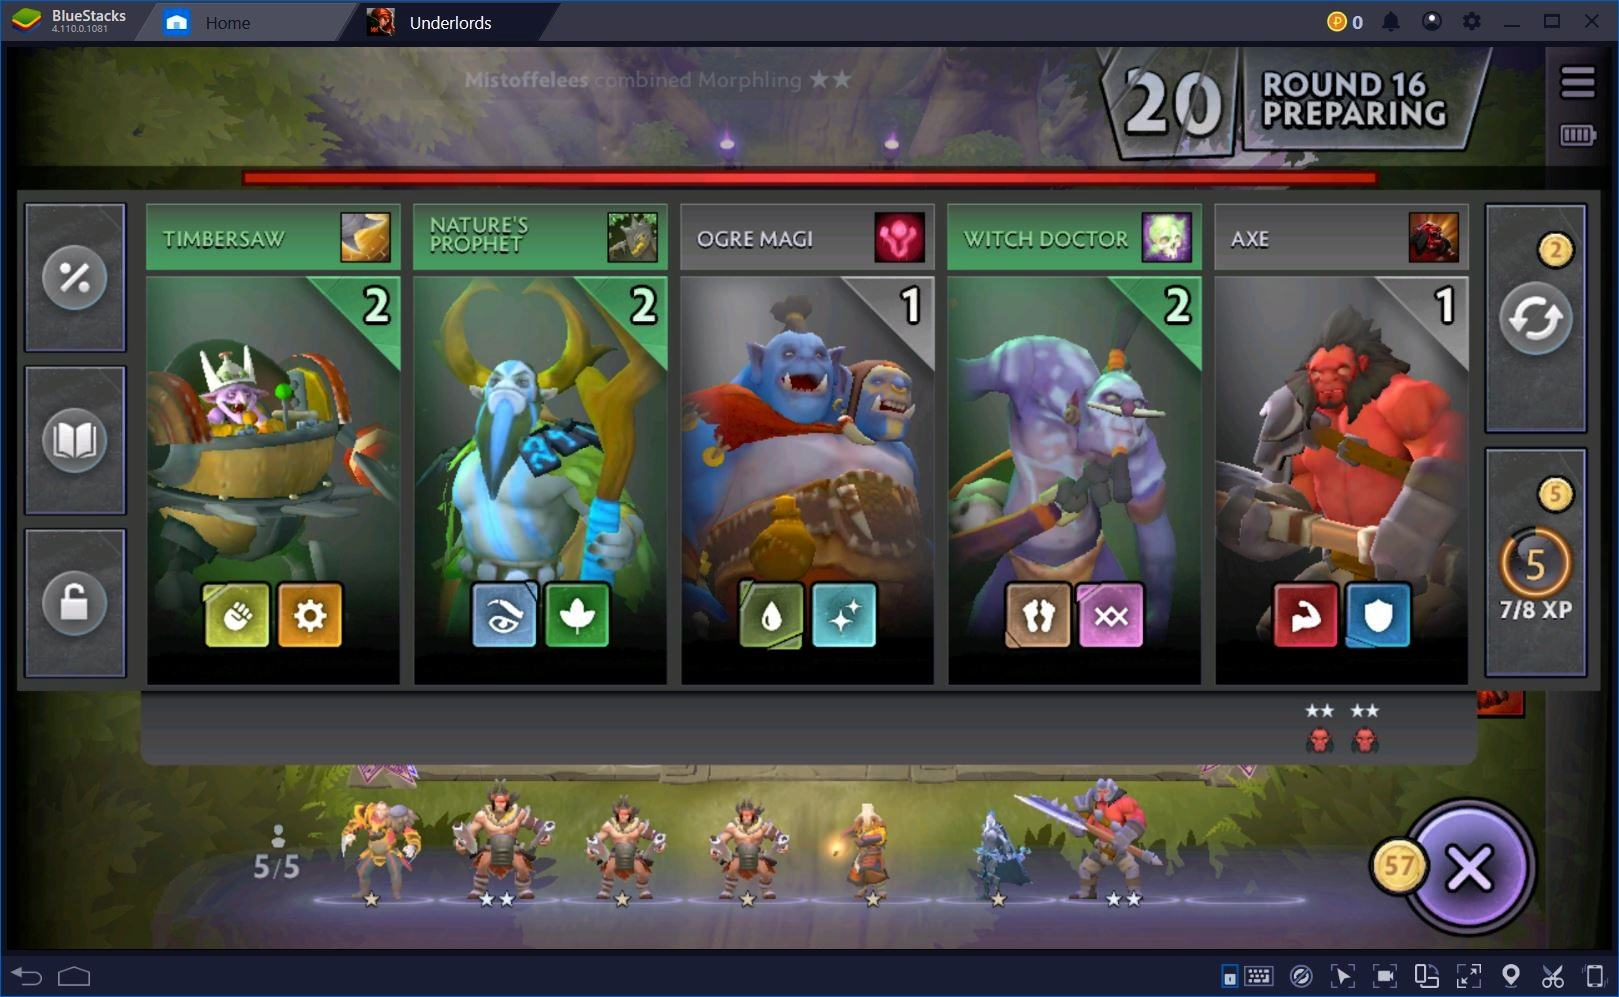 Dota Underlords: How to Build a Strong Economy